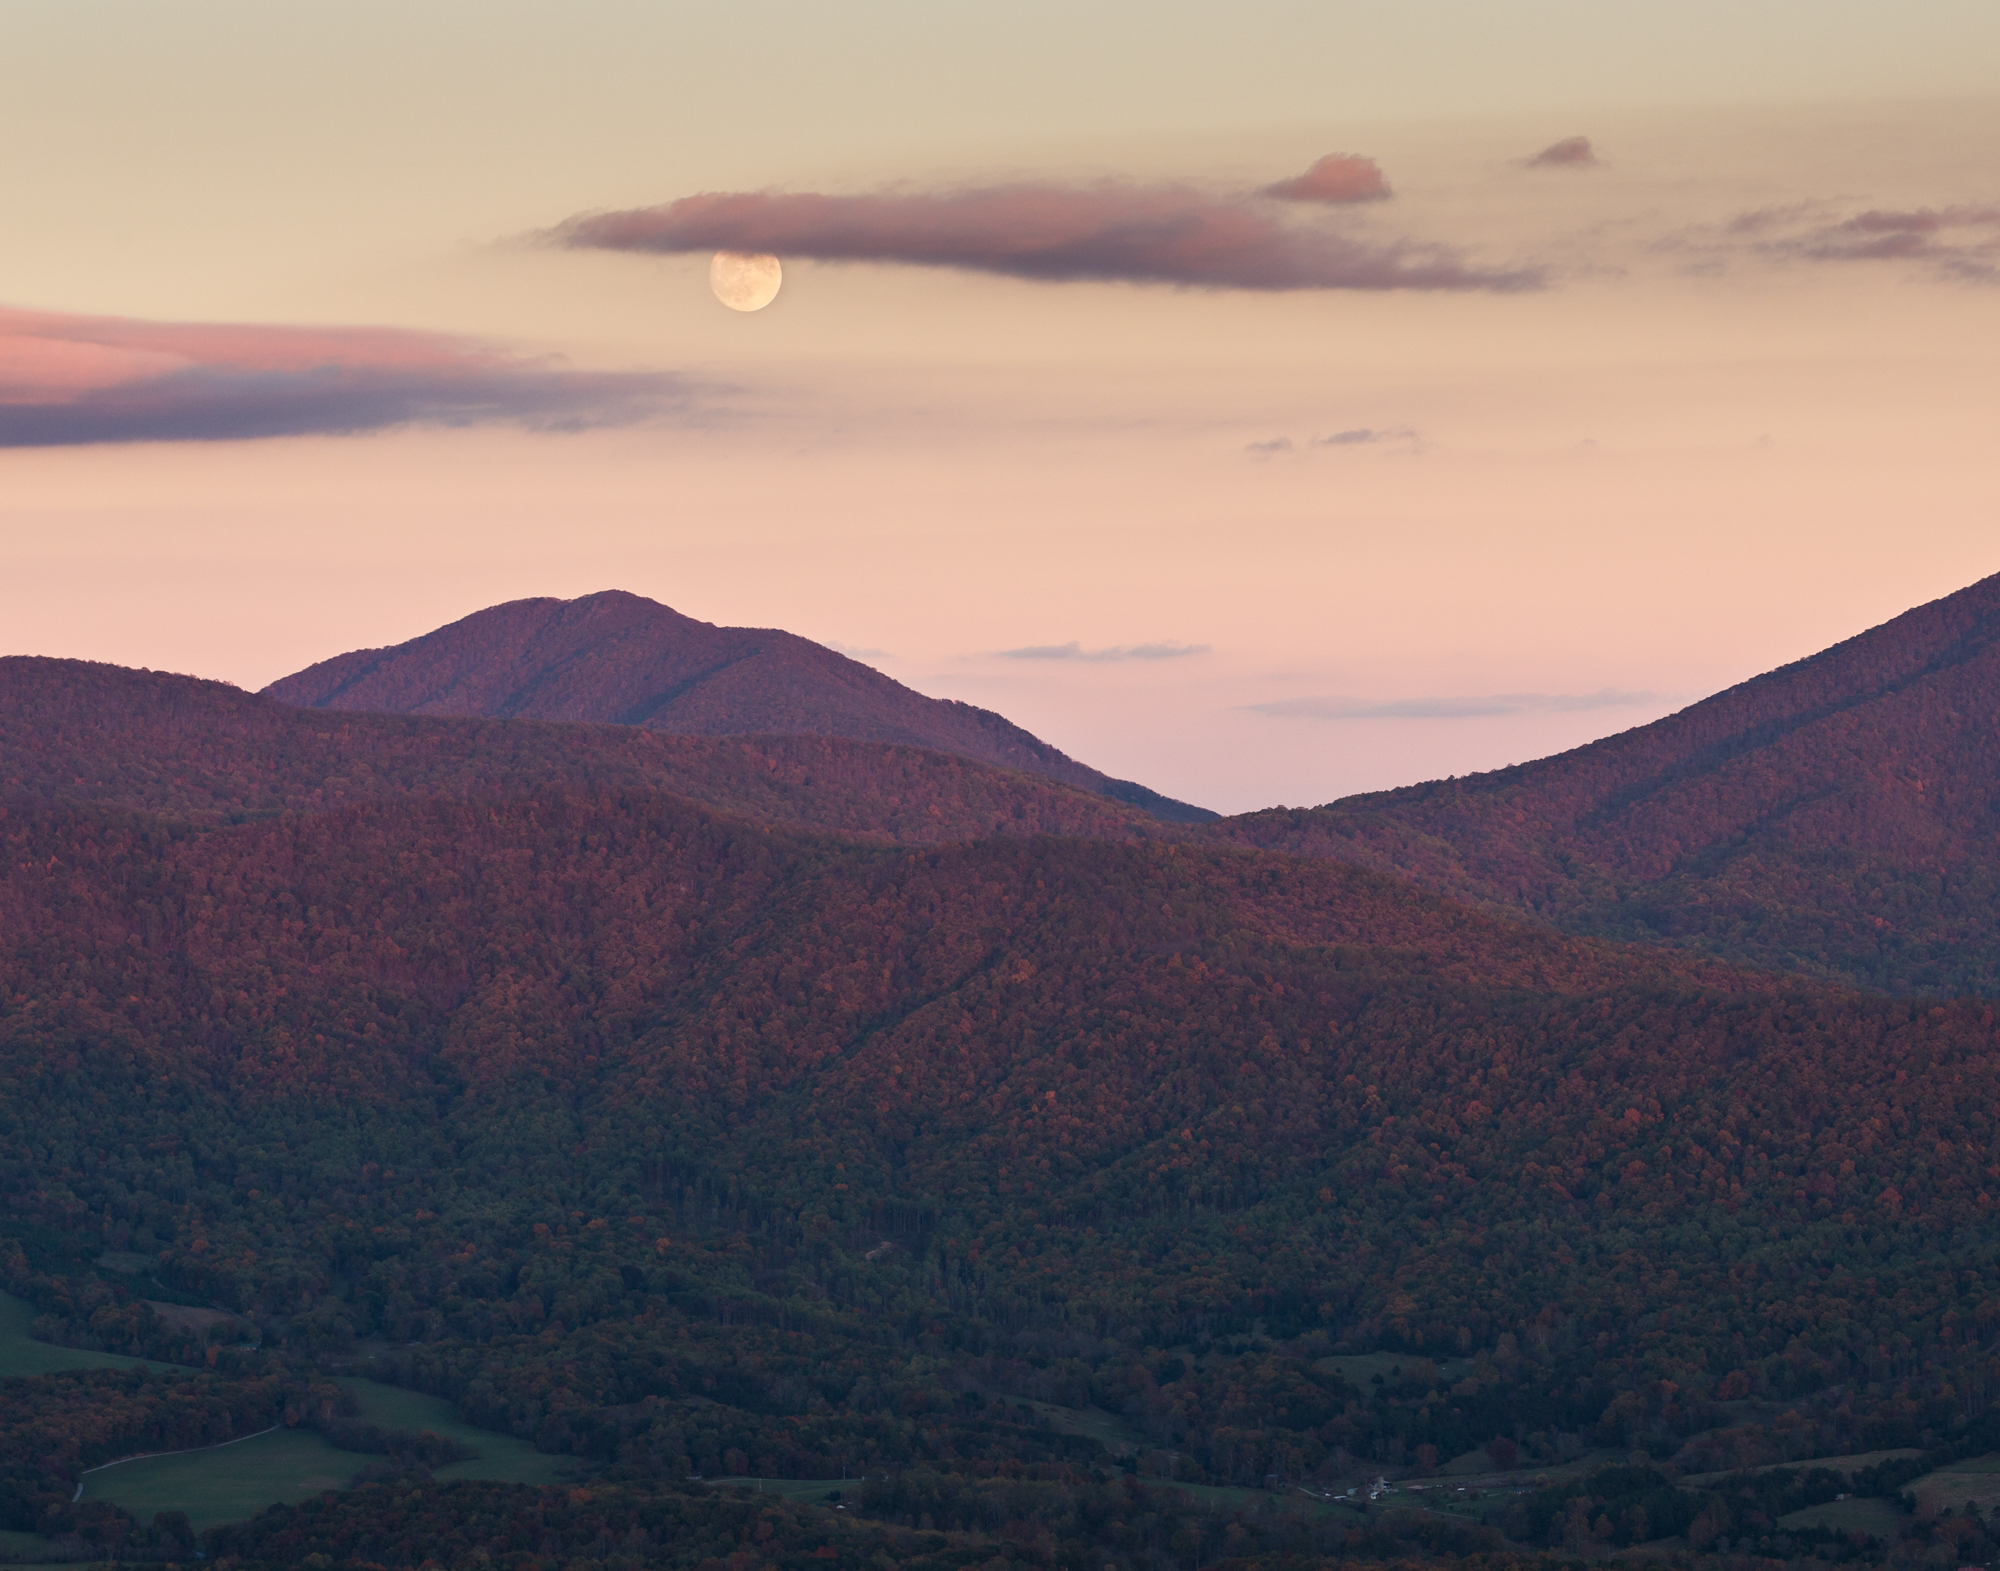 48.  Peaks of Otter, Blue Ridge Parkway, Virginia